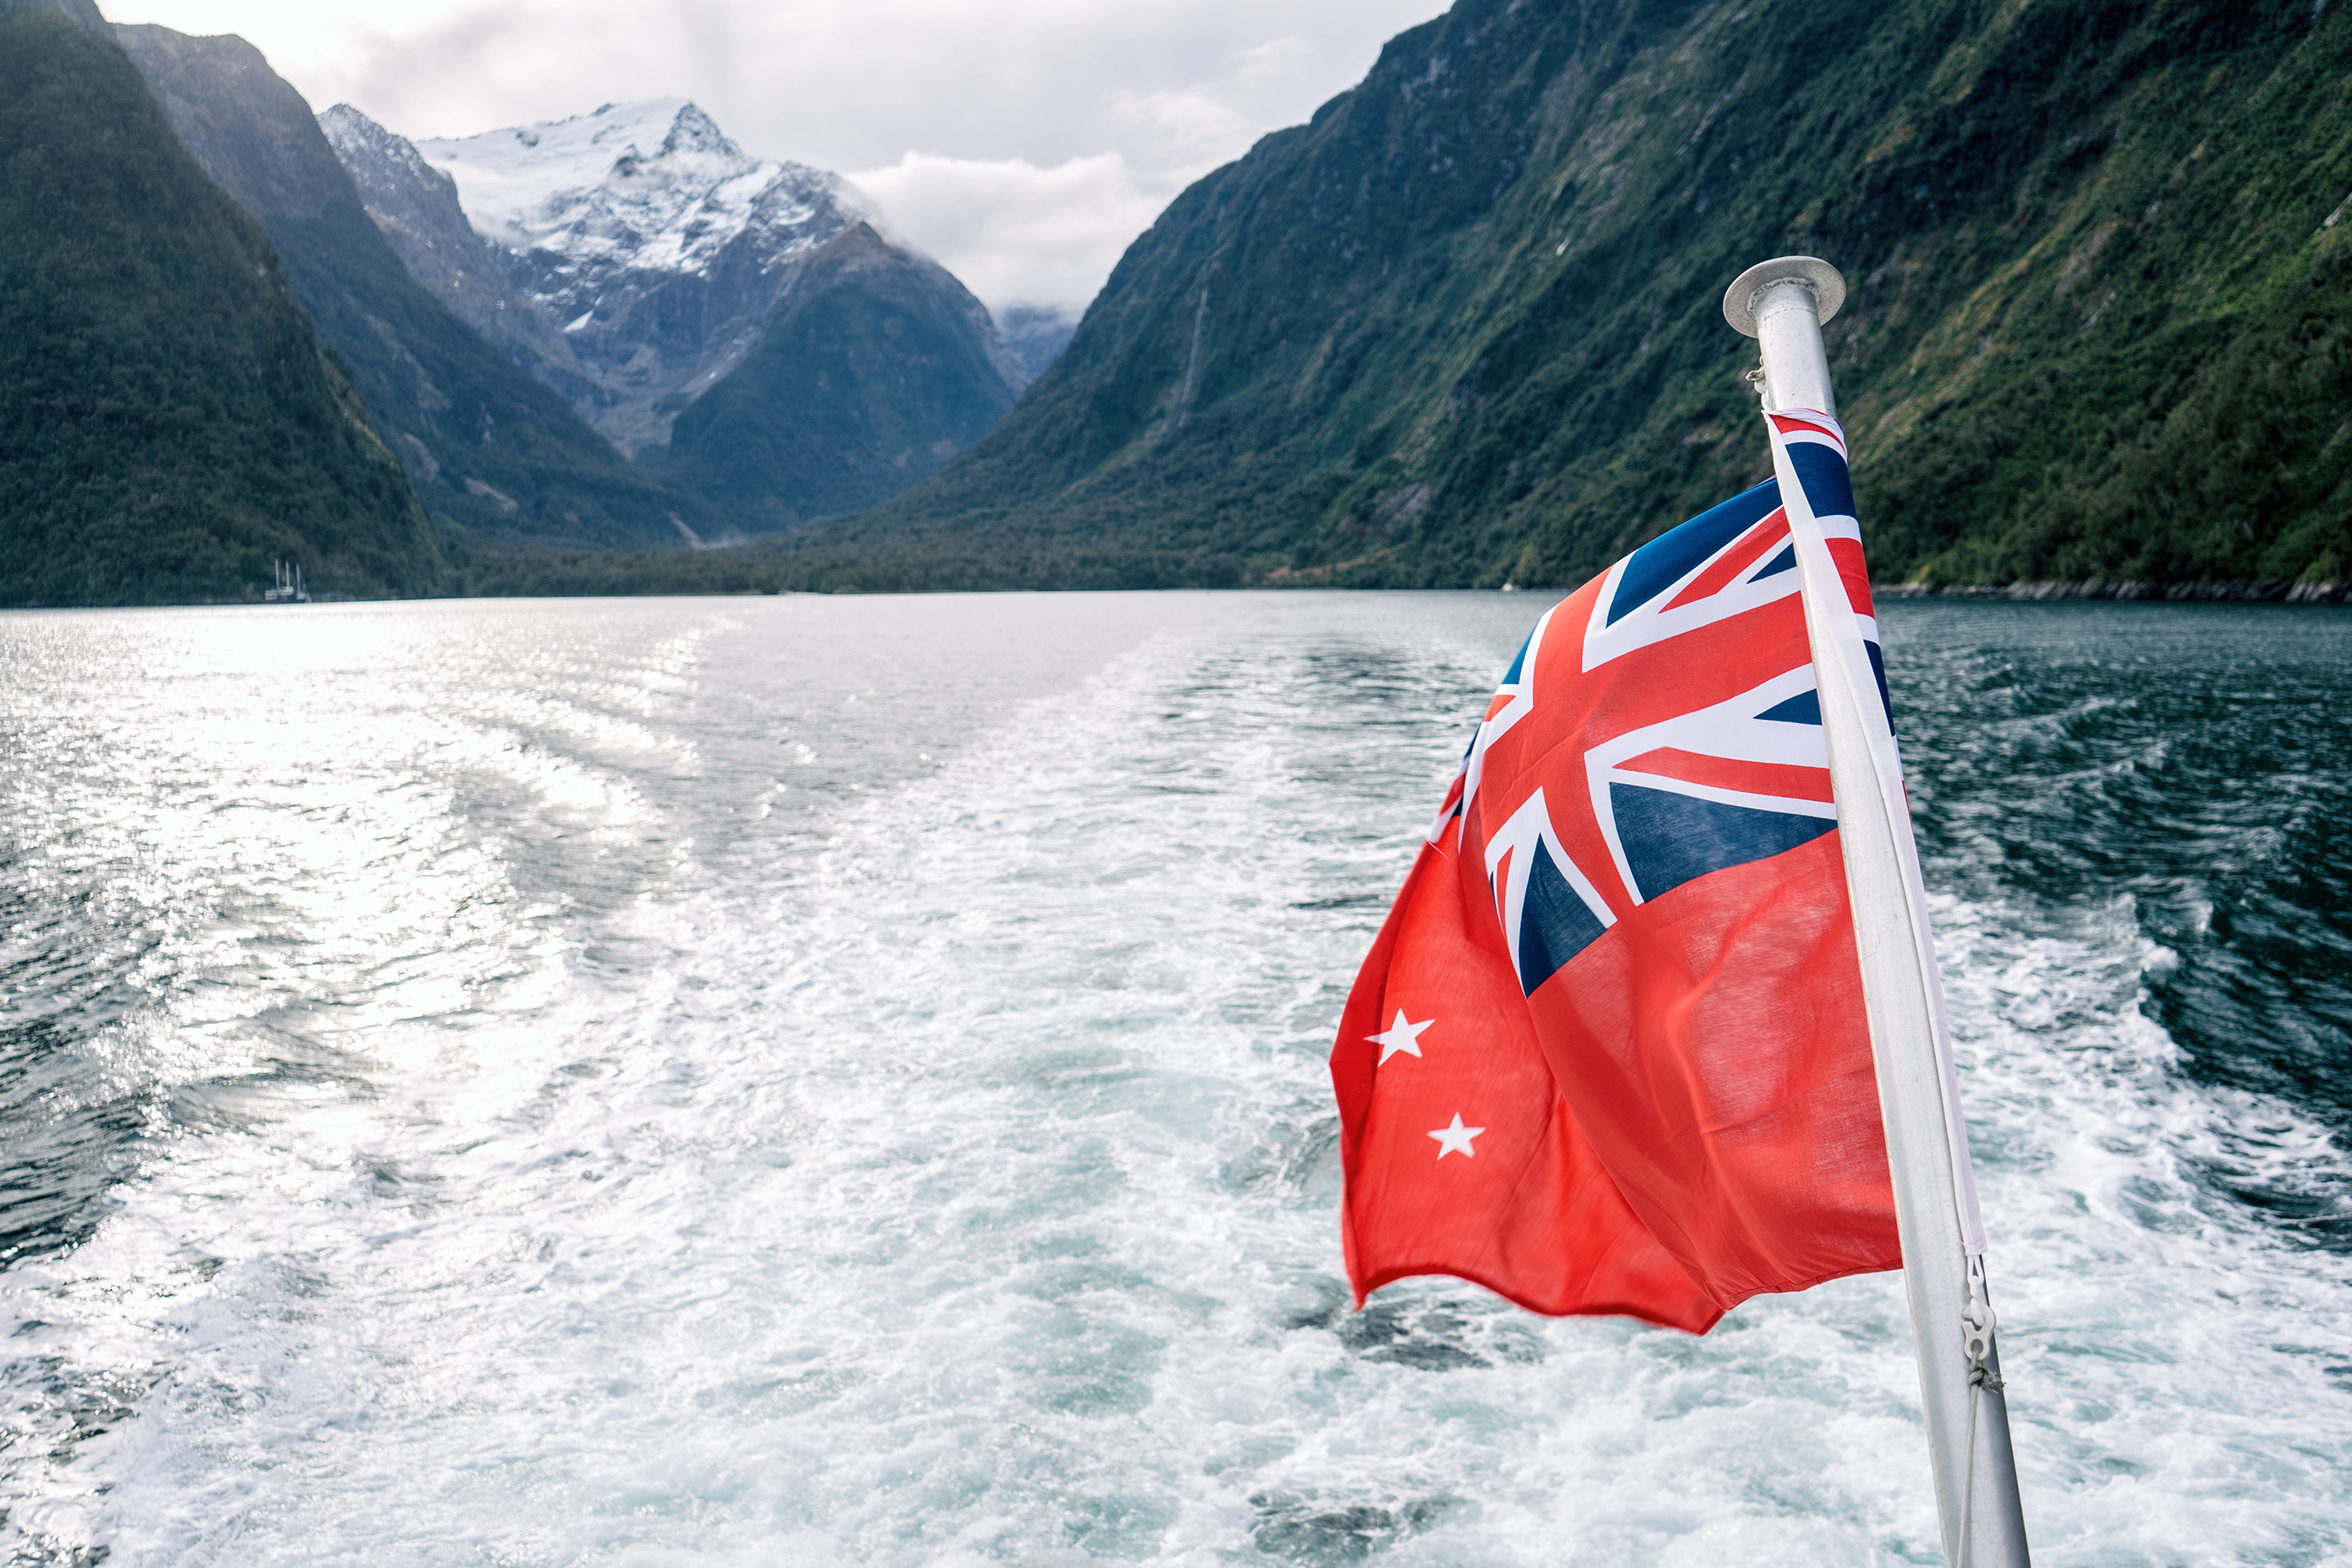 Milford Sound New Zealand Red Ensign Flag Foreground